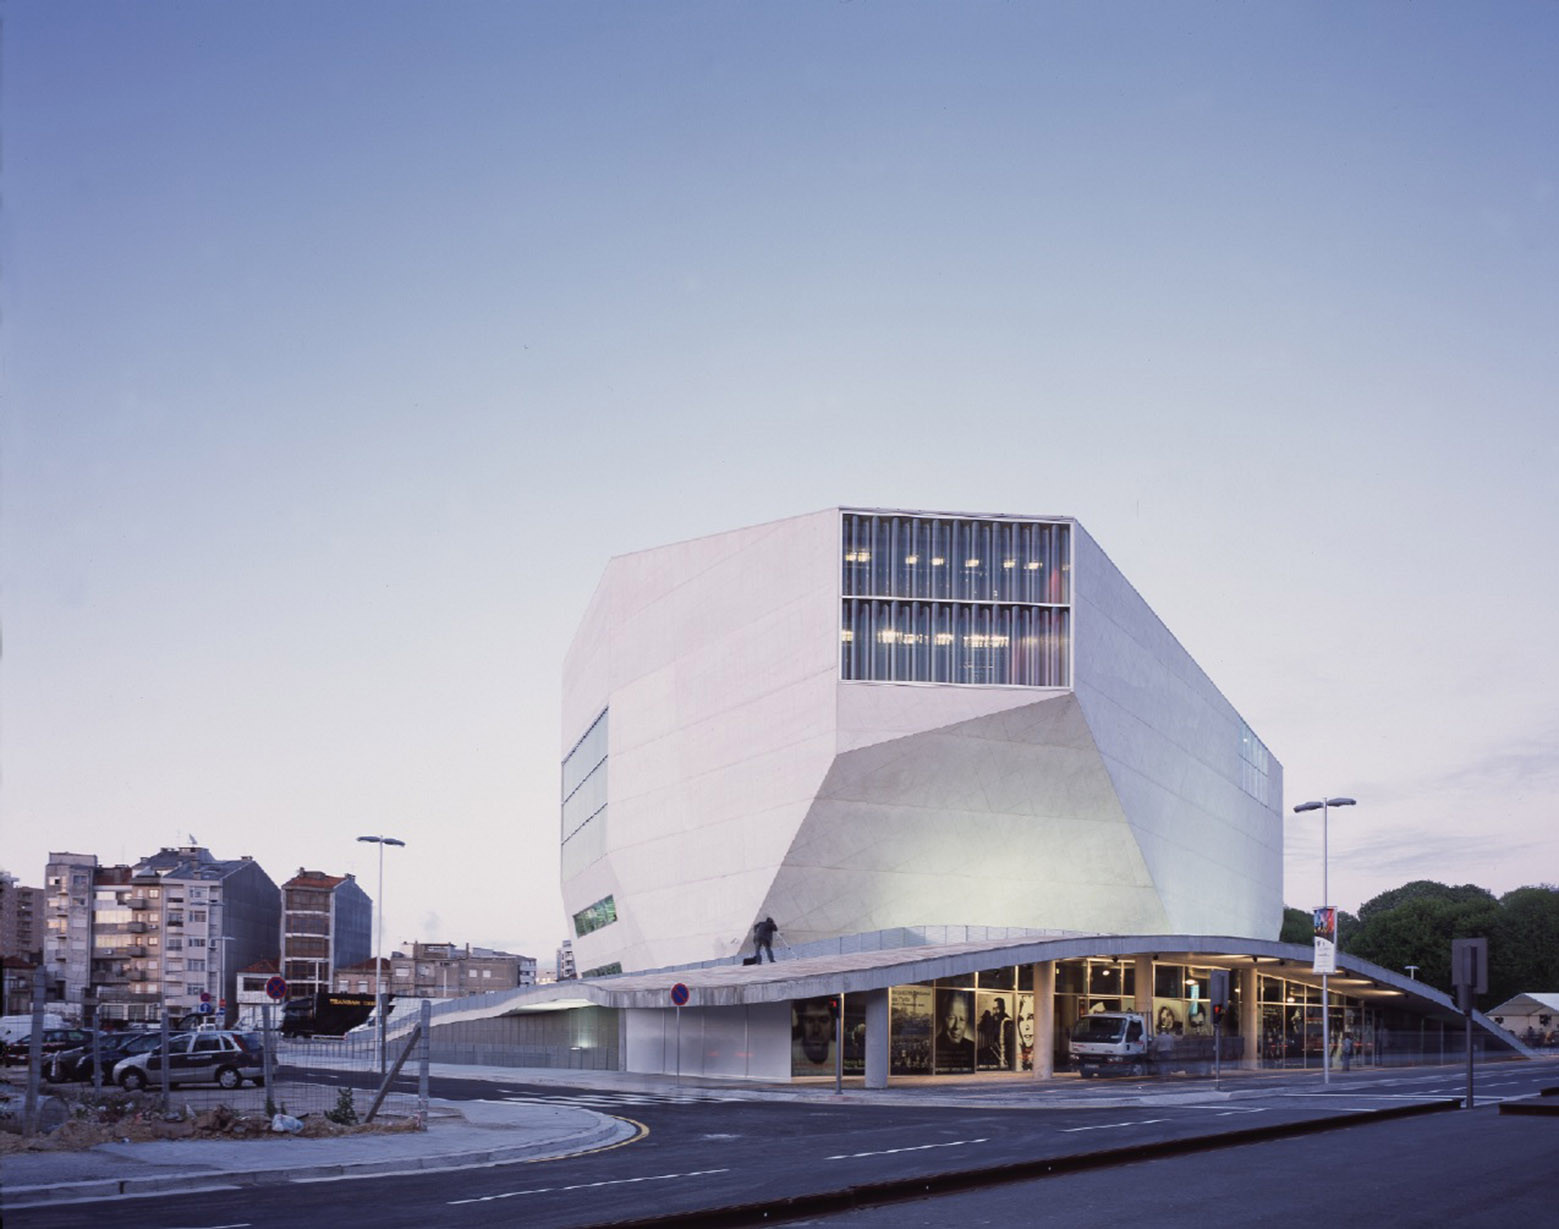 House of music in porto portugal allarchitecturedesigns for House of music